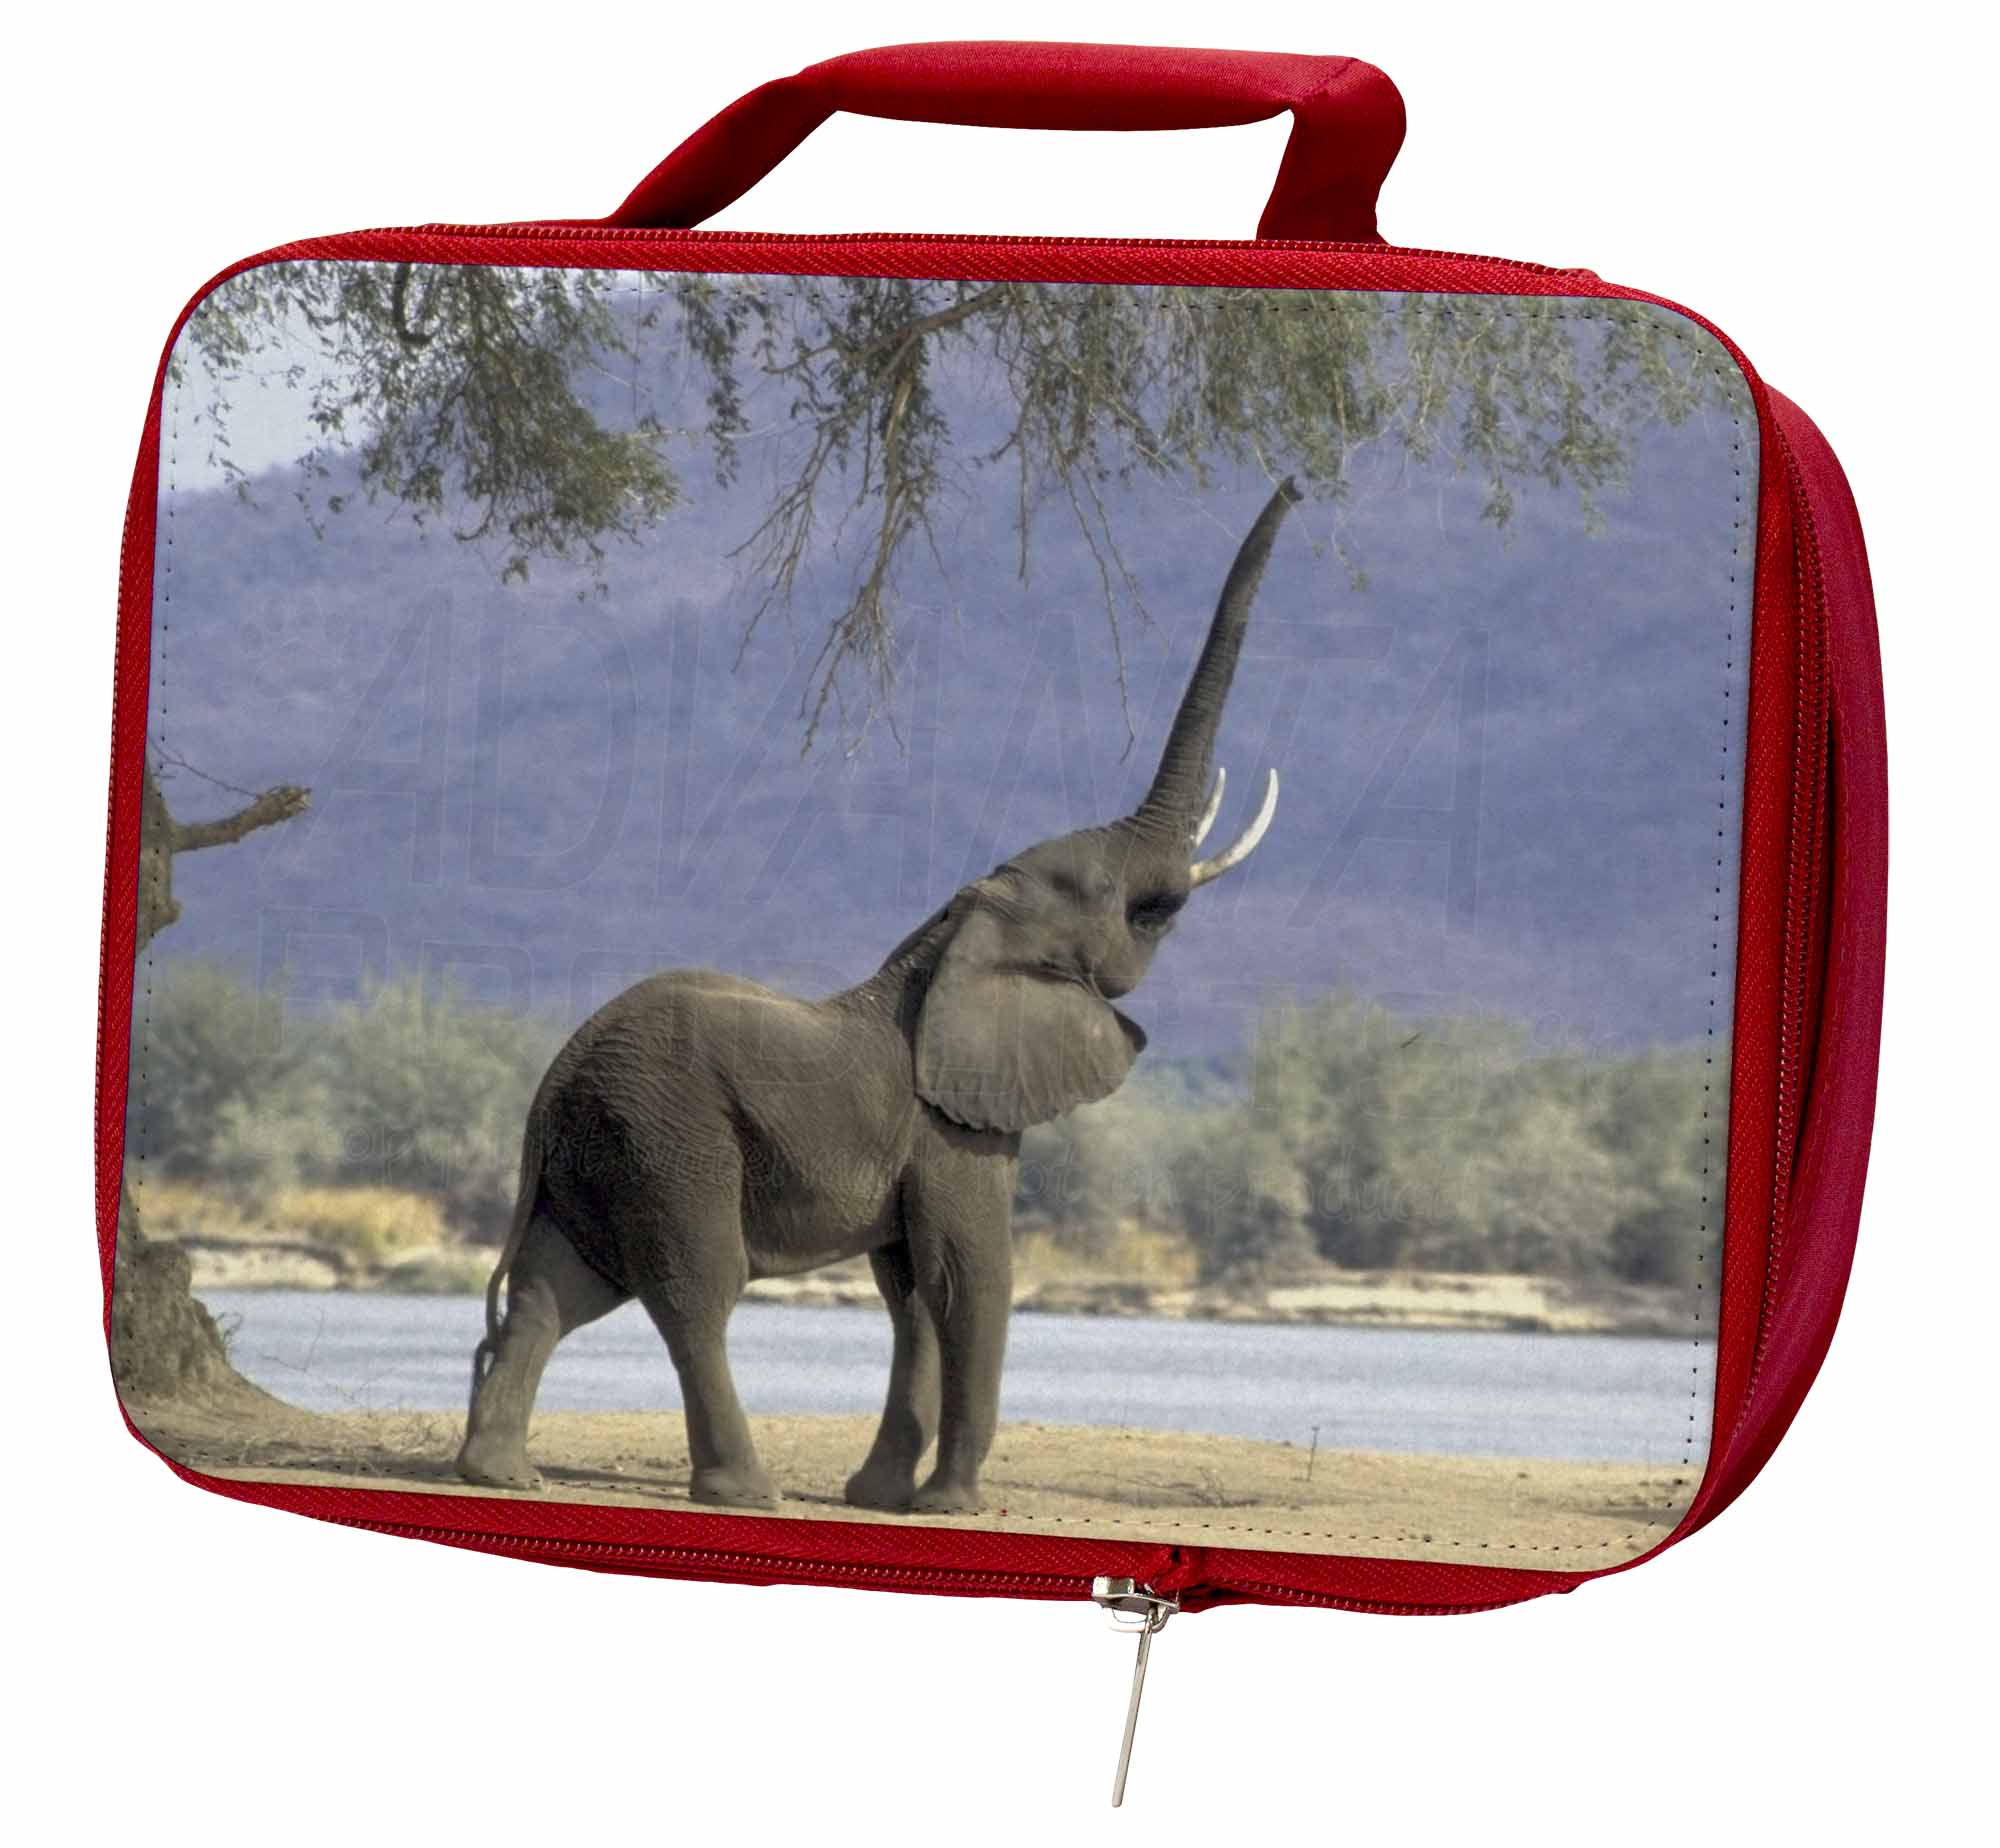 Baby Tuskers Elephant Insulated Box/Picnic Red School Lunch Box/Picnic Insulated Bag, AE-10LBR de71b6